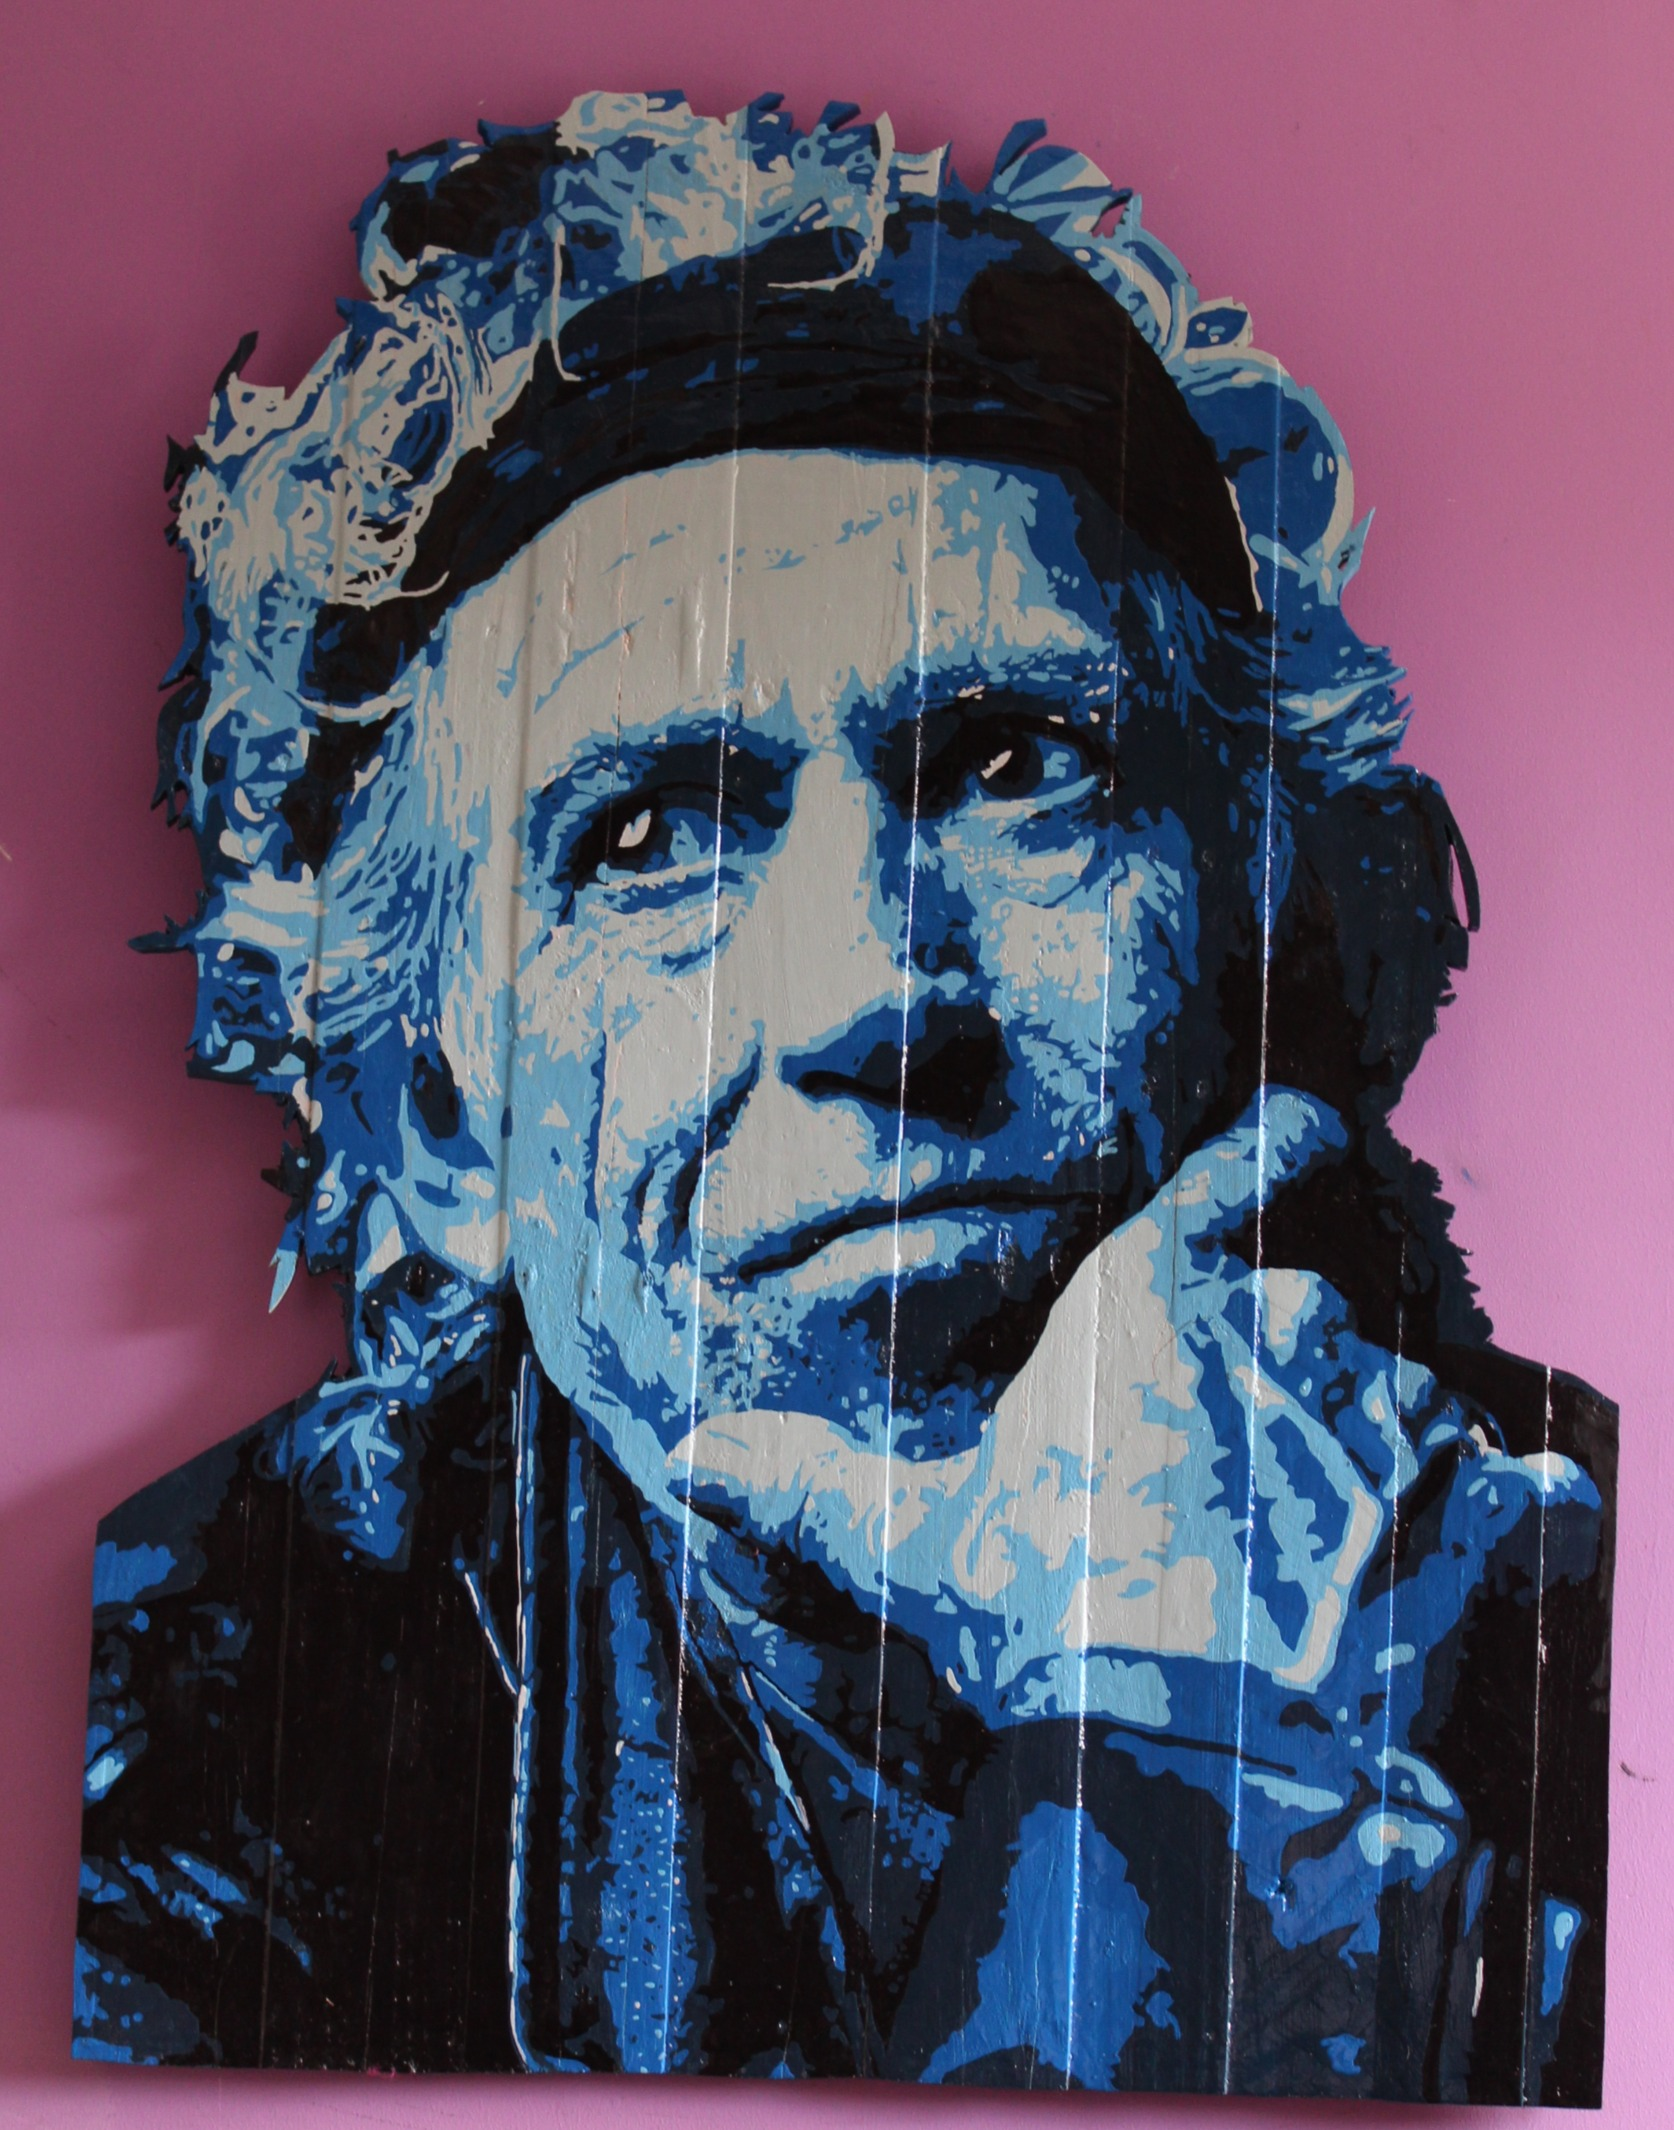 Keith Richards is Blues